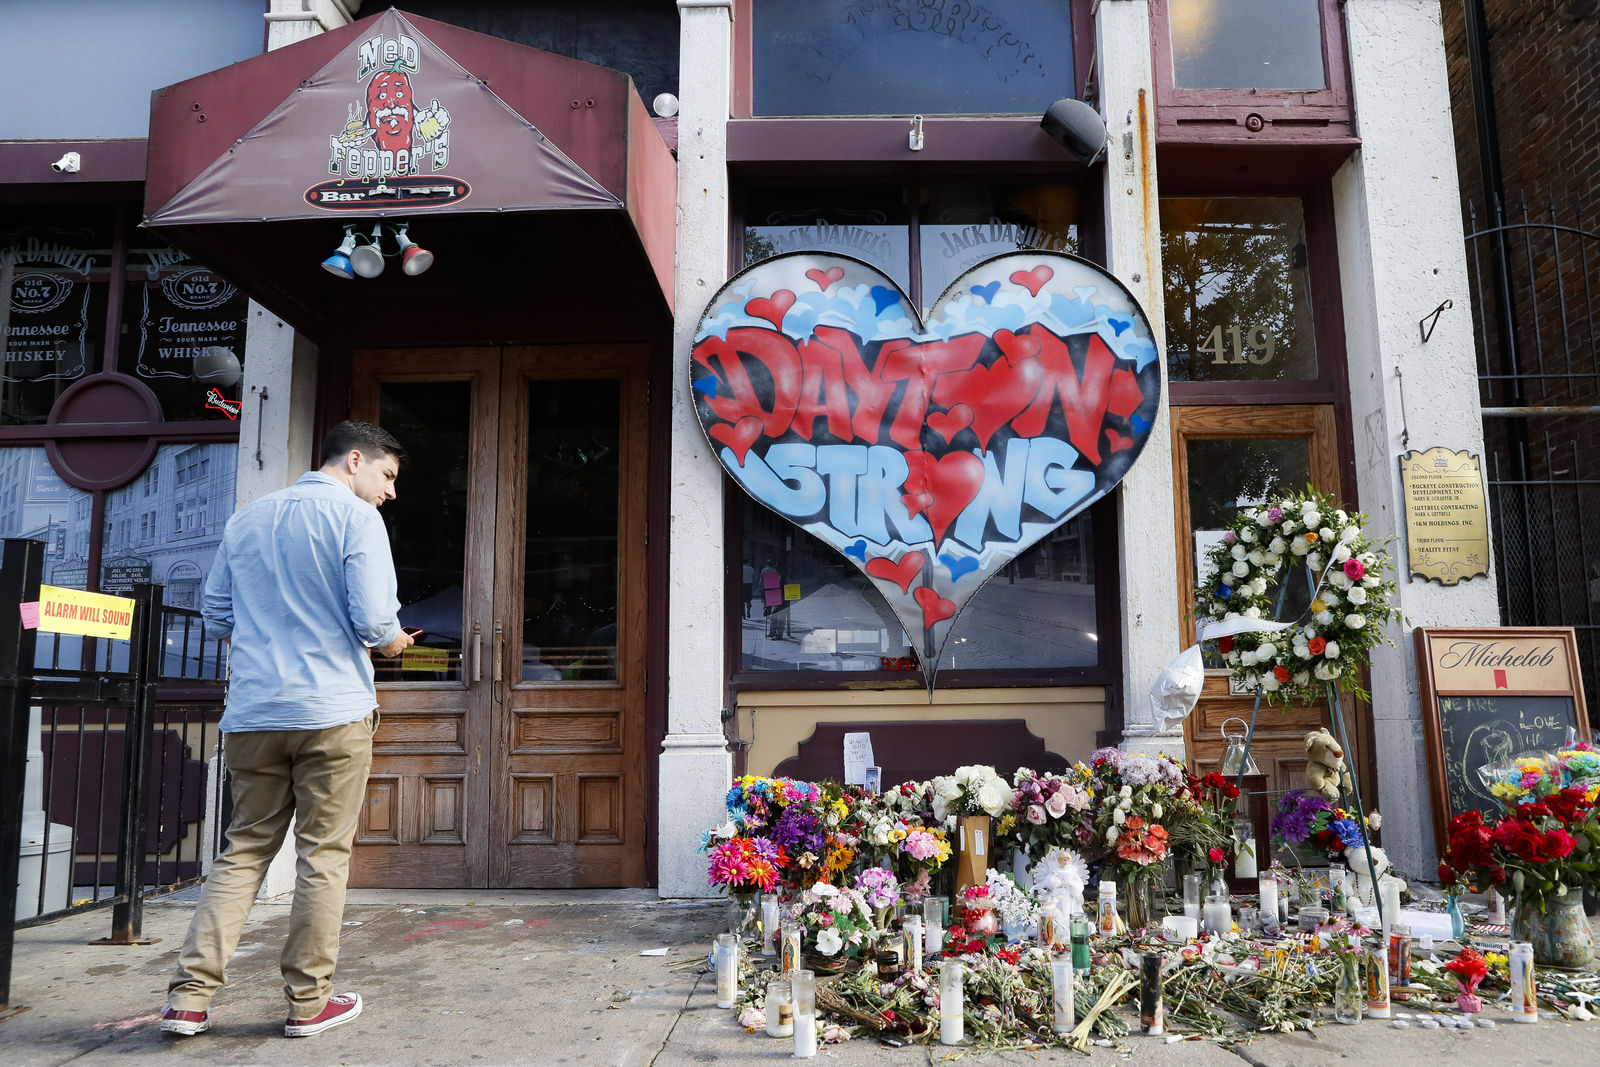 A pedestrian passes a makeshift memorial for the slain and injured victims of a mass shooting that occurred in the Oregon District early Sunday morning, Wednesday, Aug. 7, 2019, in Dayton, Ohio. (AP Photo/John Minchillo)